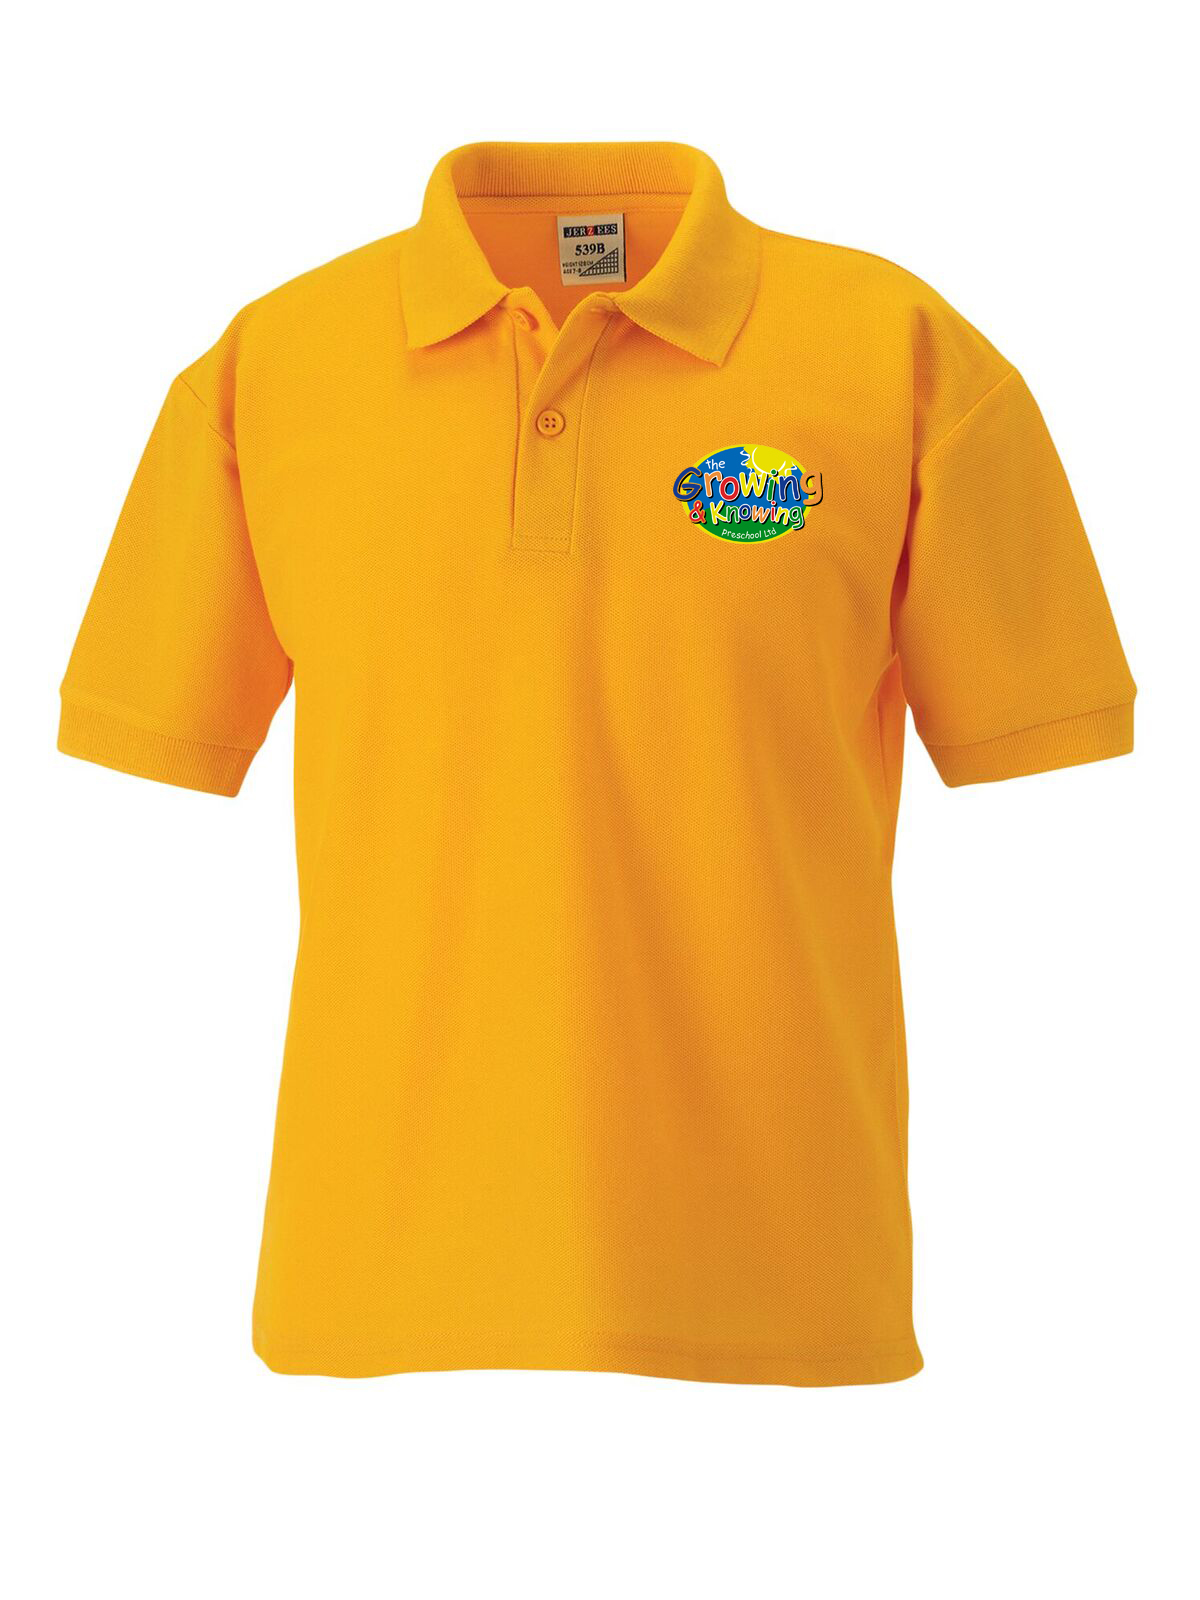 Growing and Knowing Polo Shirt